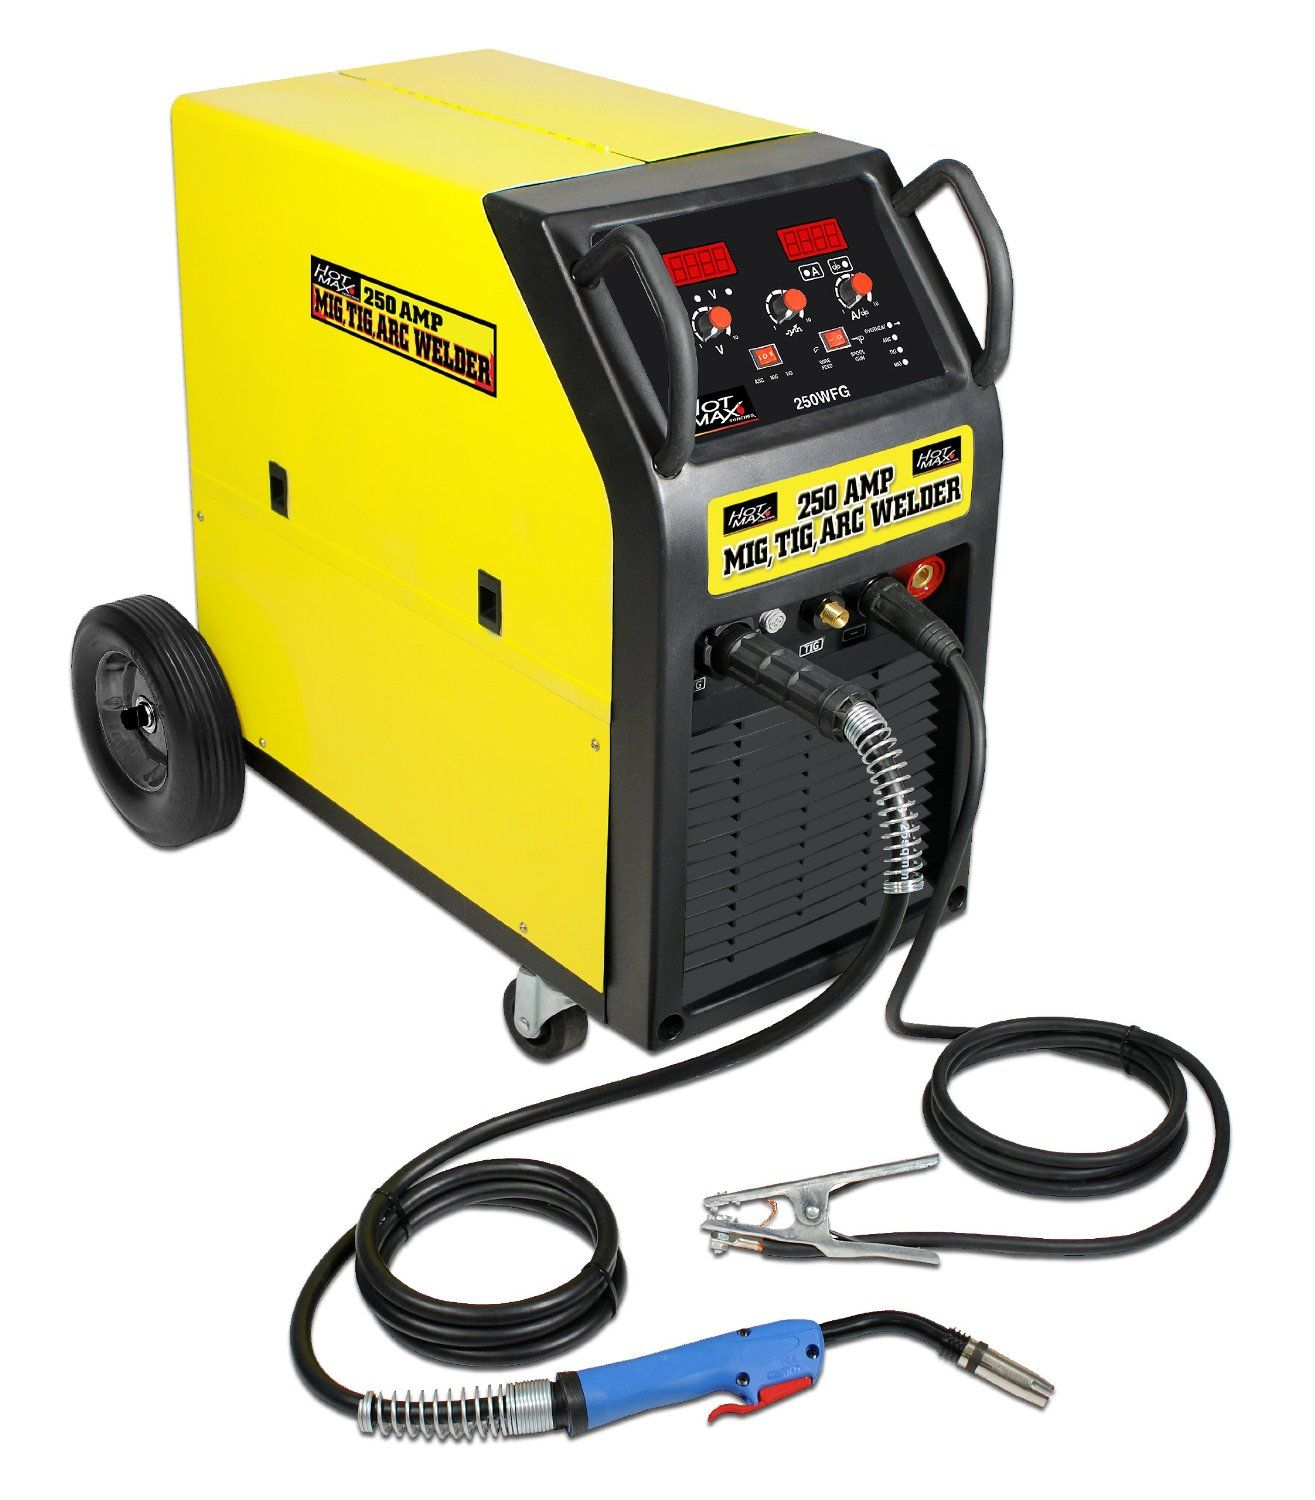 dffee2c03bb99e76bbabac299e996358 hot max 250wfg all in one 250 amp mig tig arc welding machine  at eliteediting.co